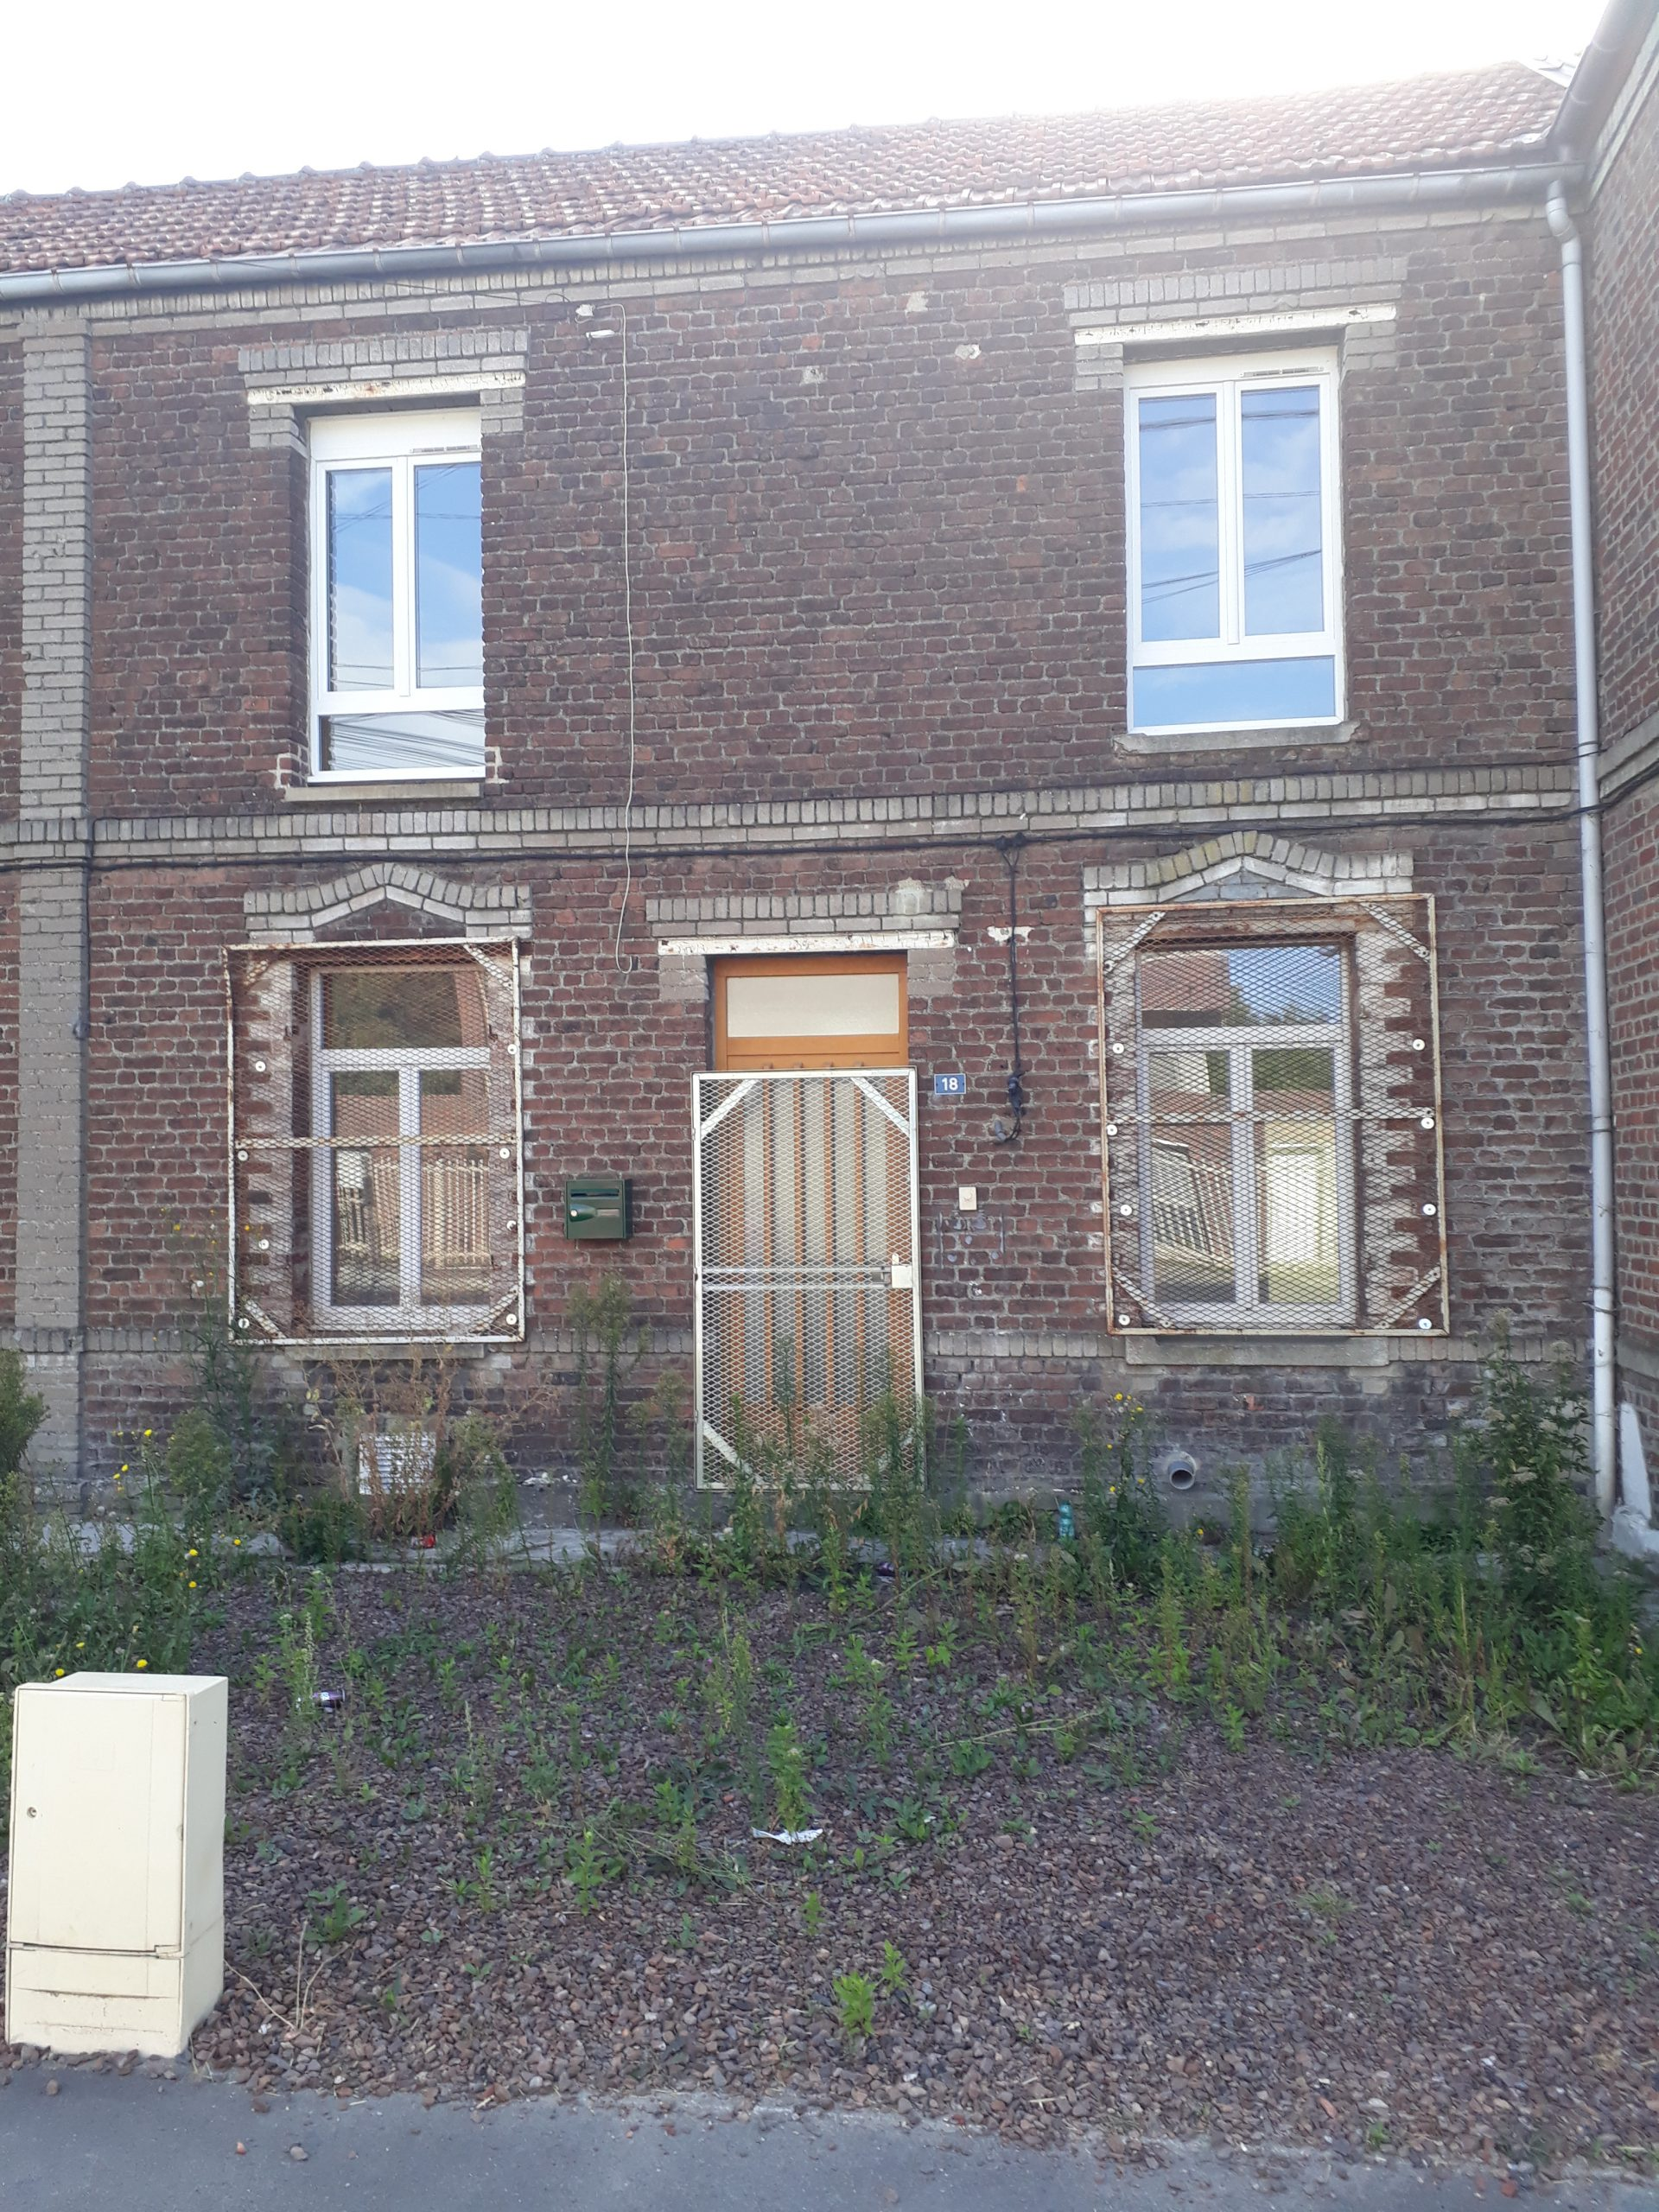 COURRIERES 18, rue Maurice Tilloy